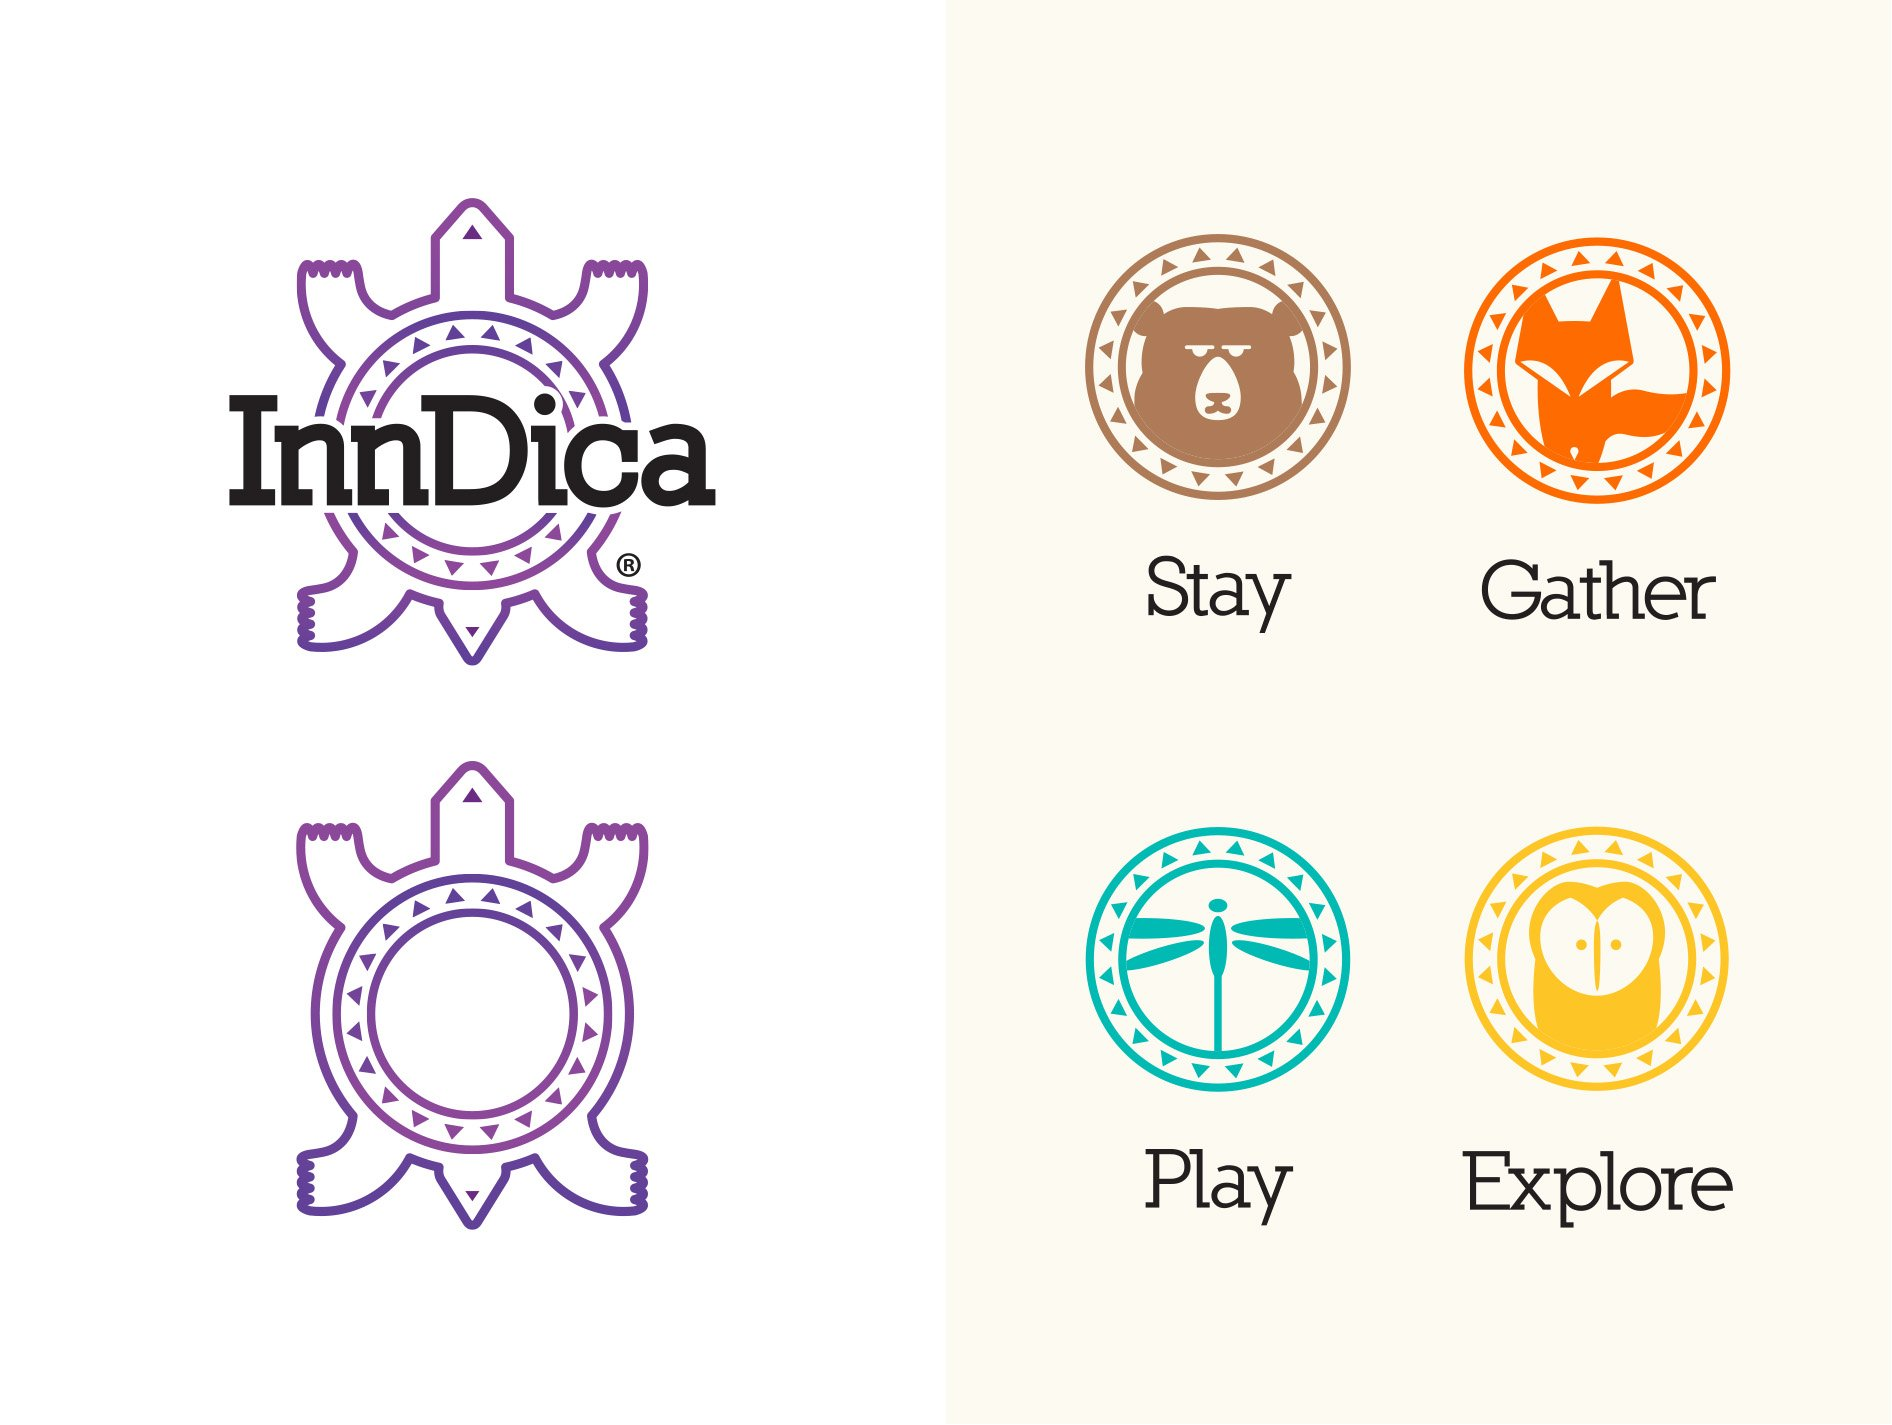 InnDica.com Turtle Logos and Stay Gather Play Explore Icons